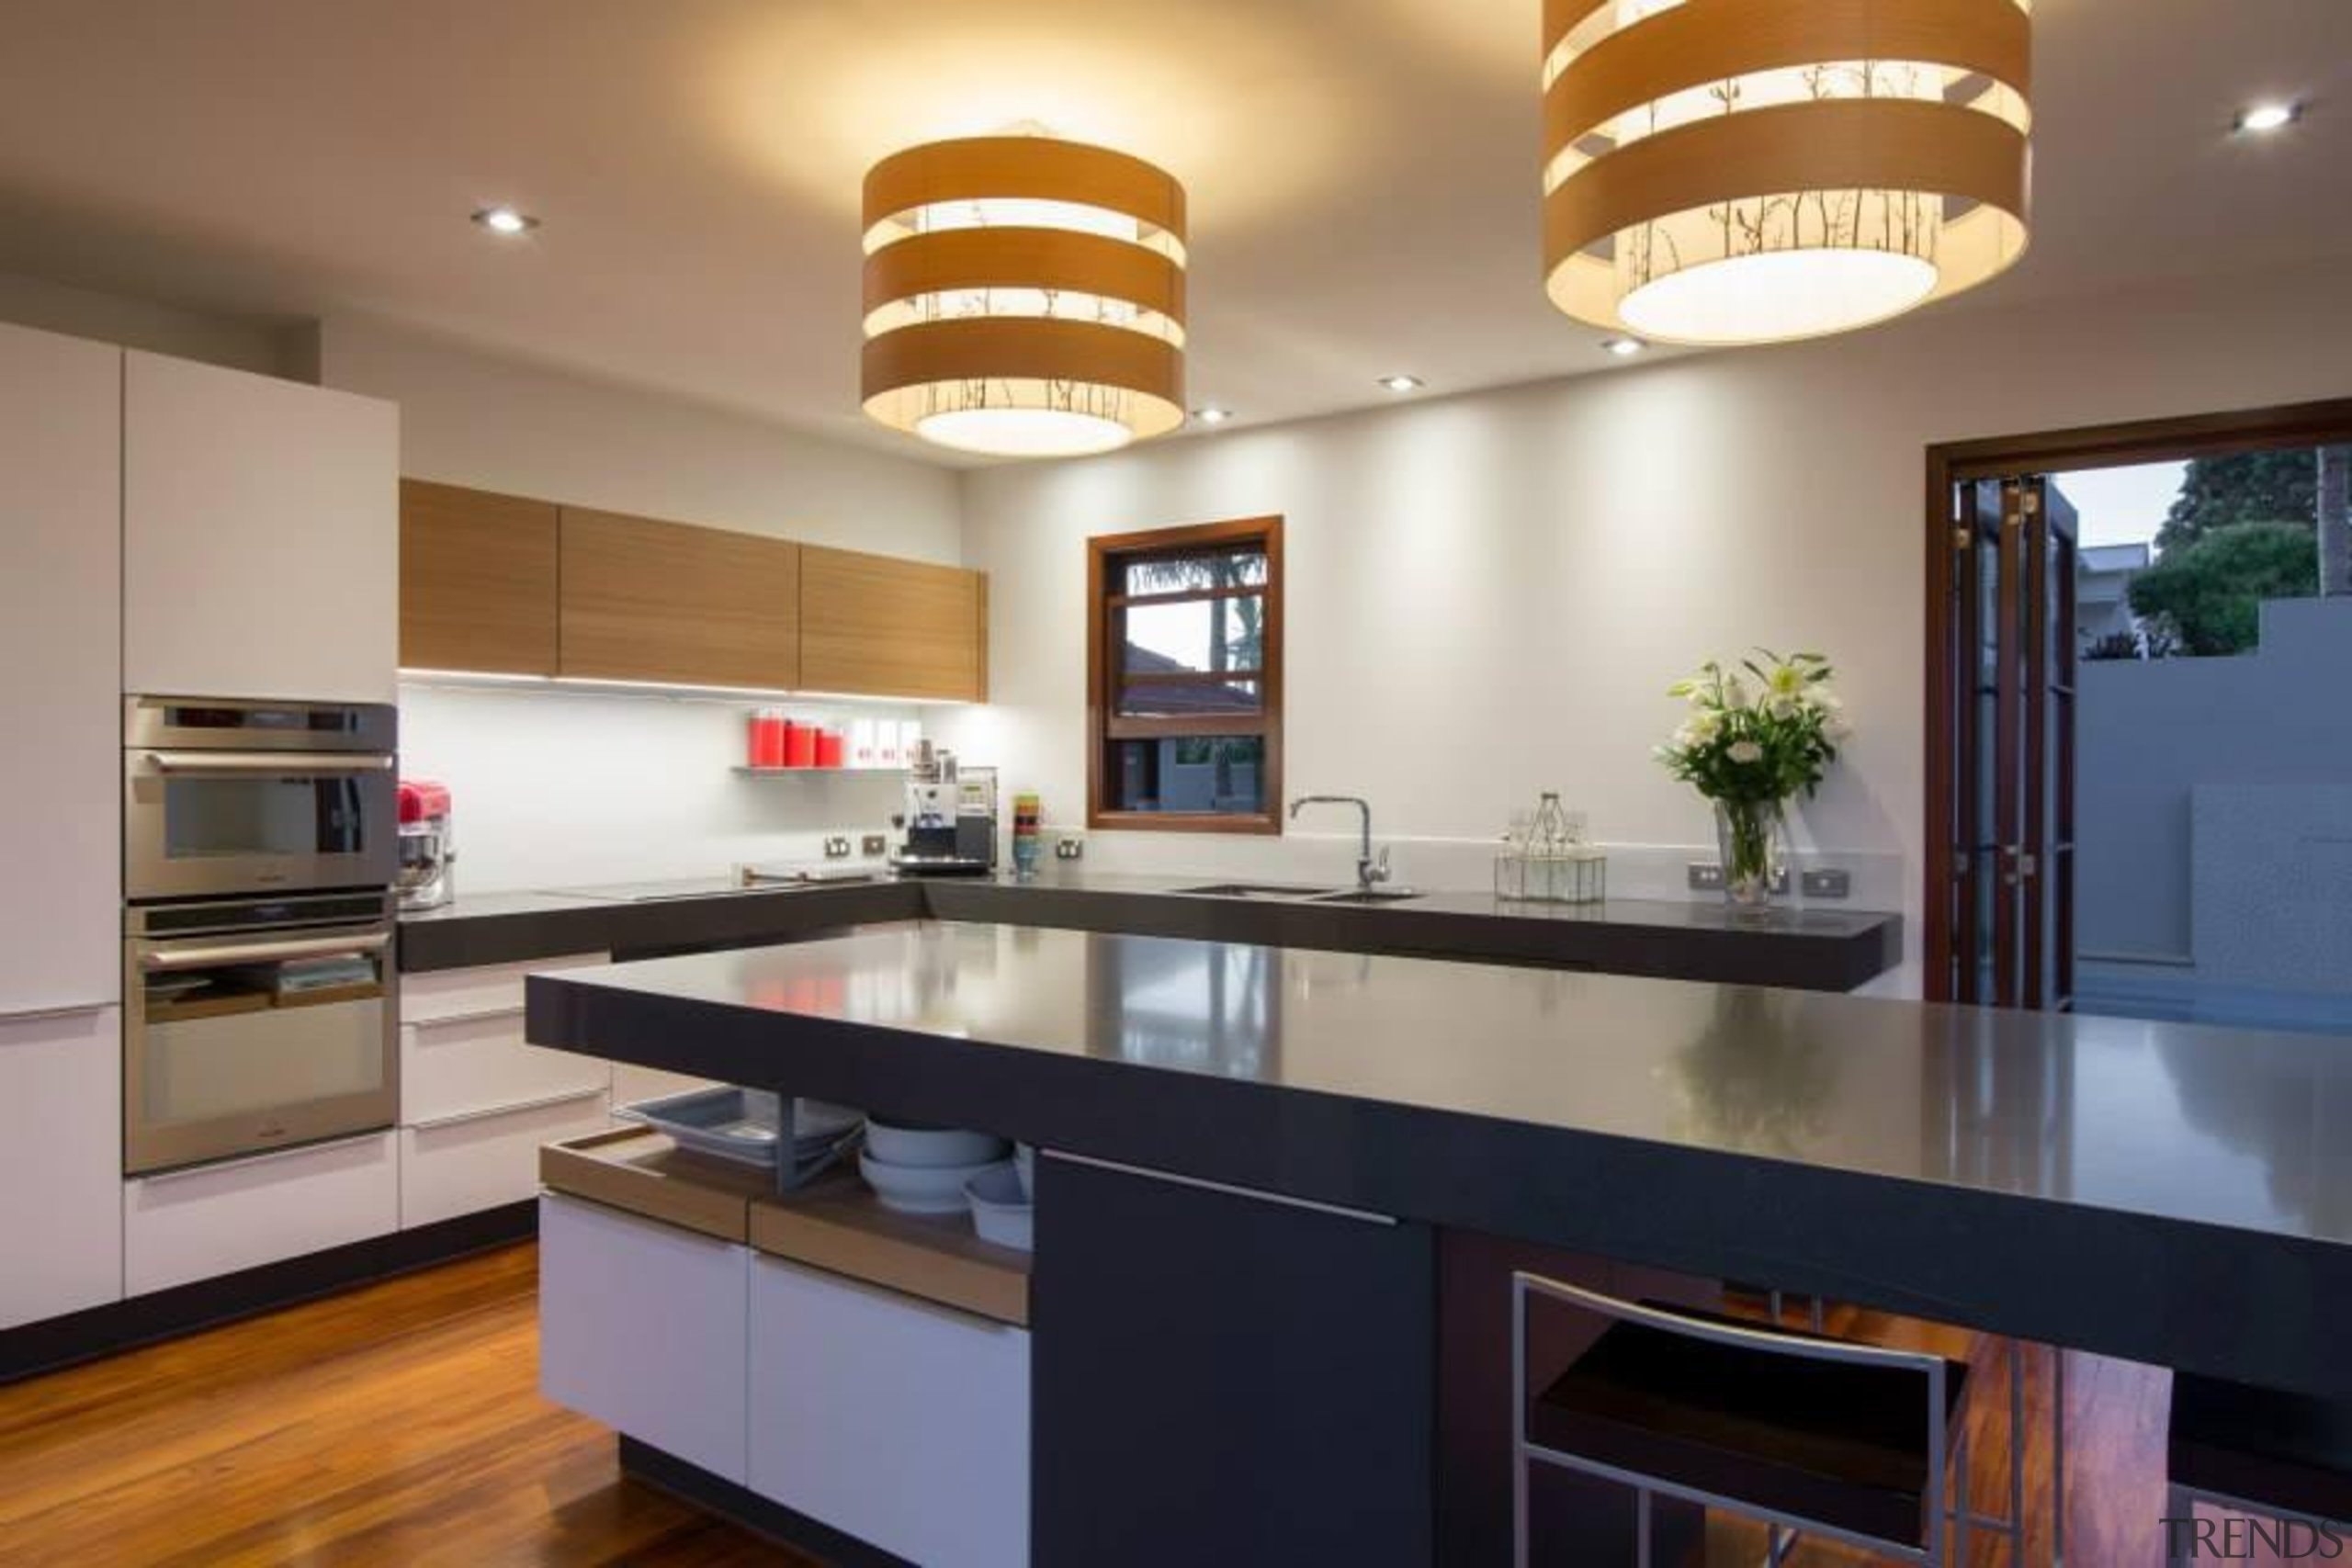 For more information, please visit Poggenpohl New cabinetry, ceiling, countertop, cuisine classique, hardwood, interior design, kitchen, property, real estate, room, gray, brown